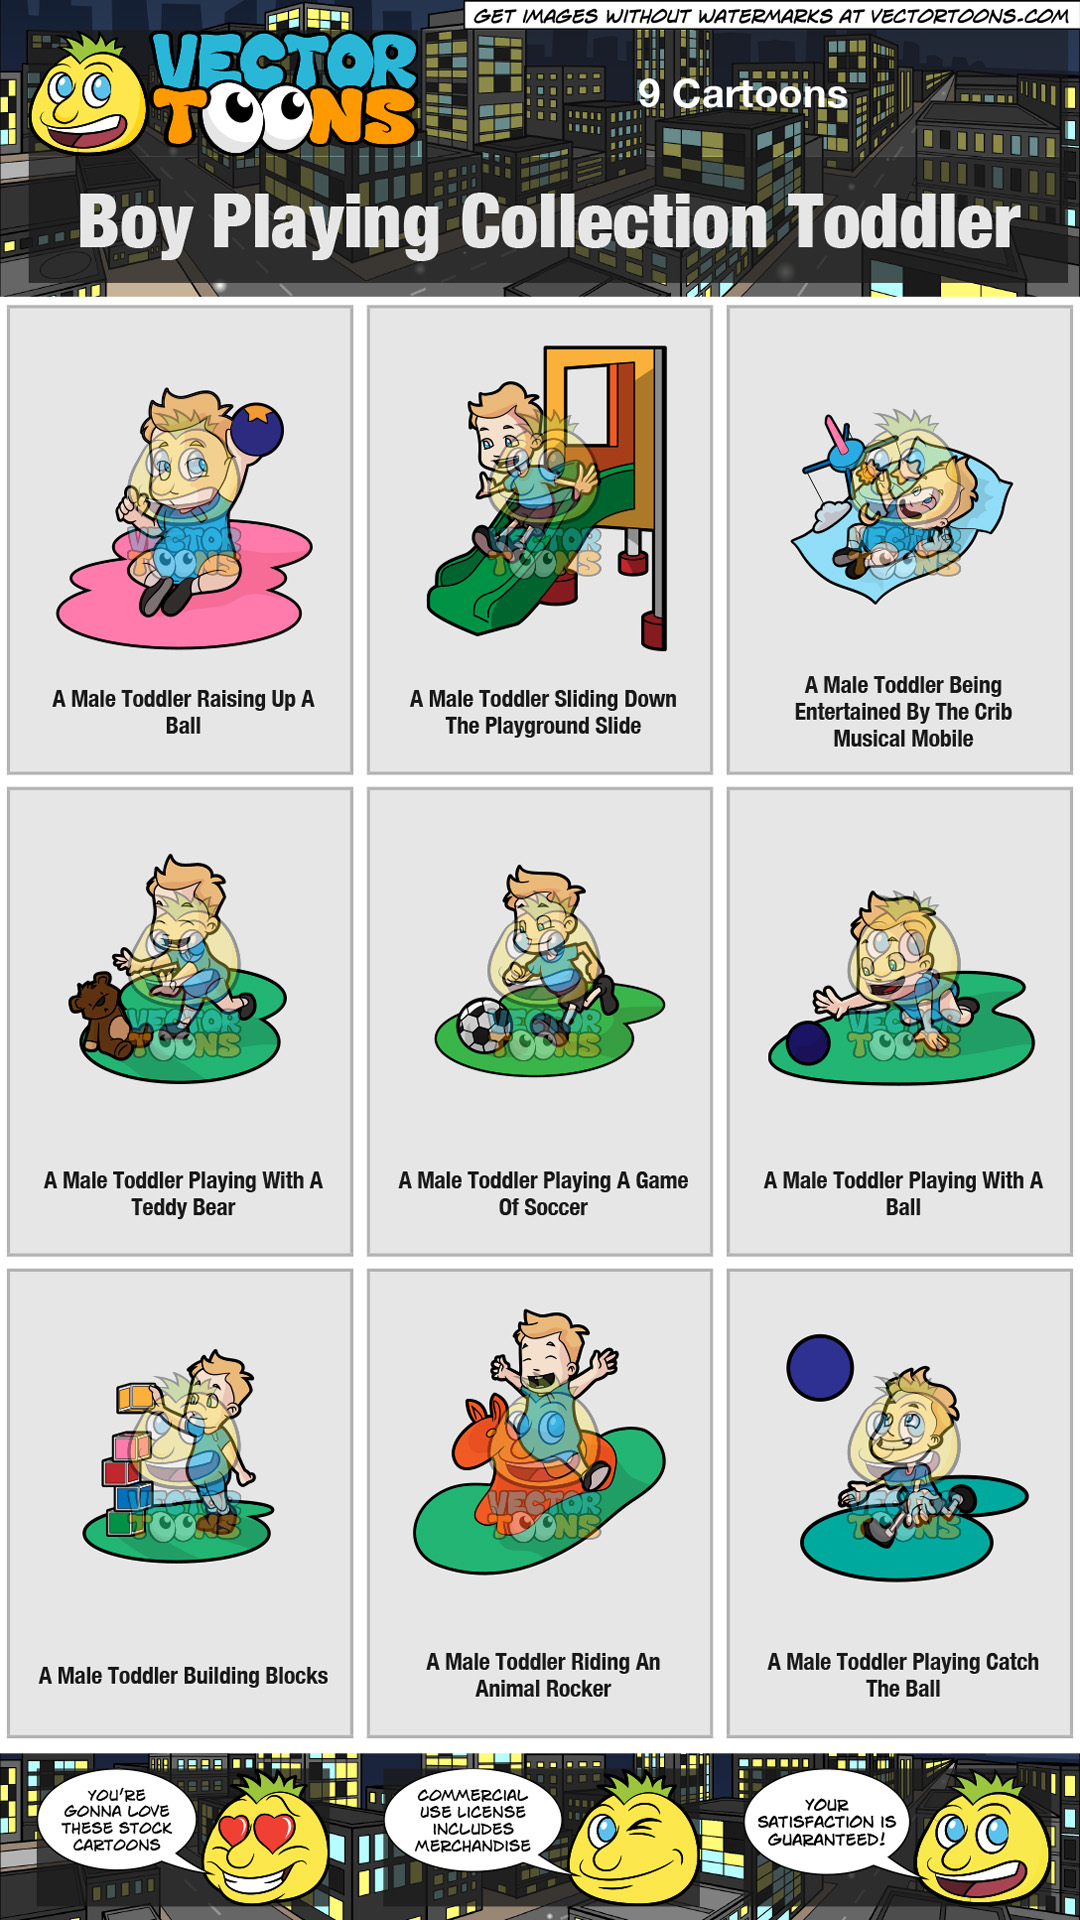 Boy Playing Collection Toddler thumbnail